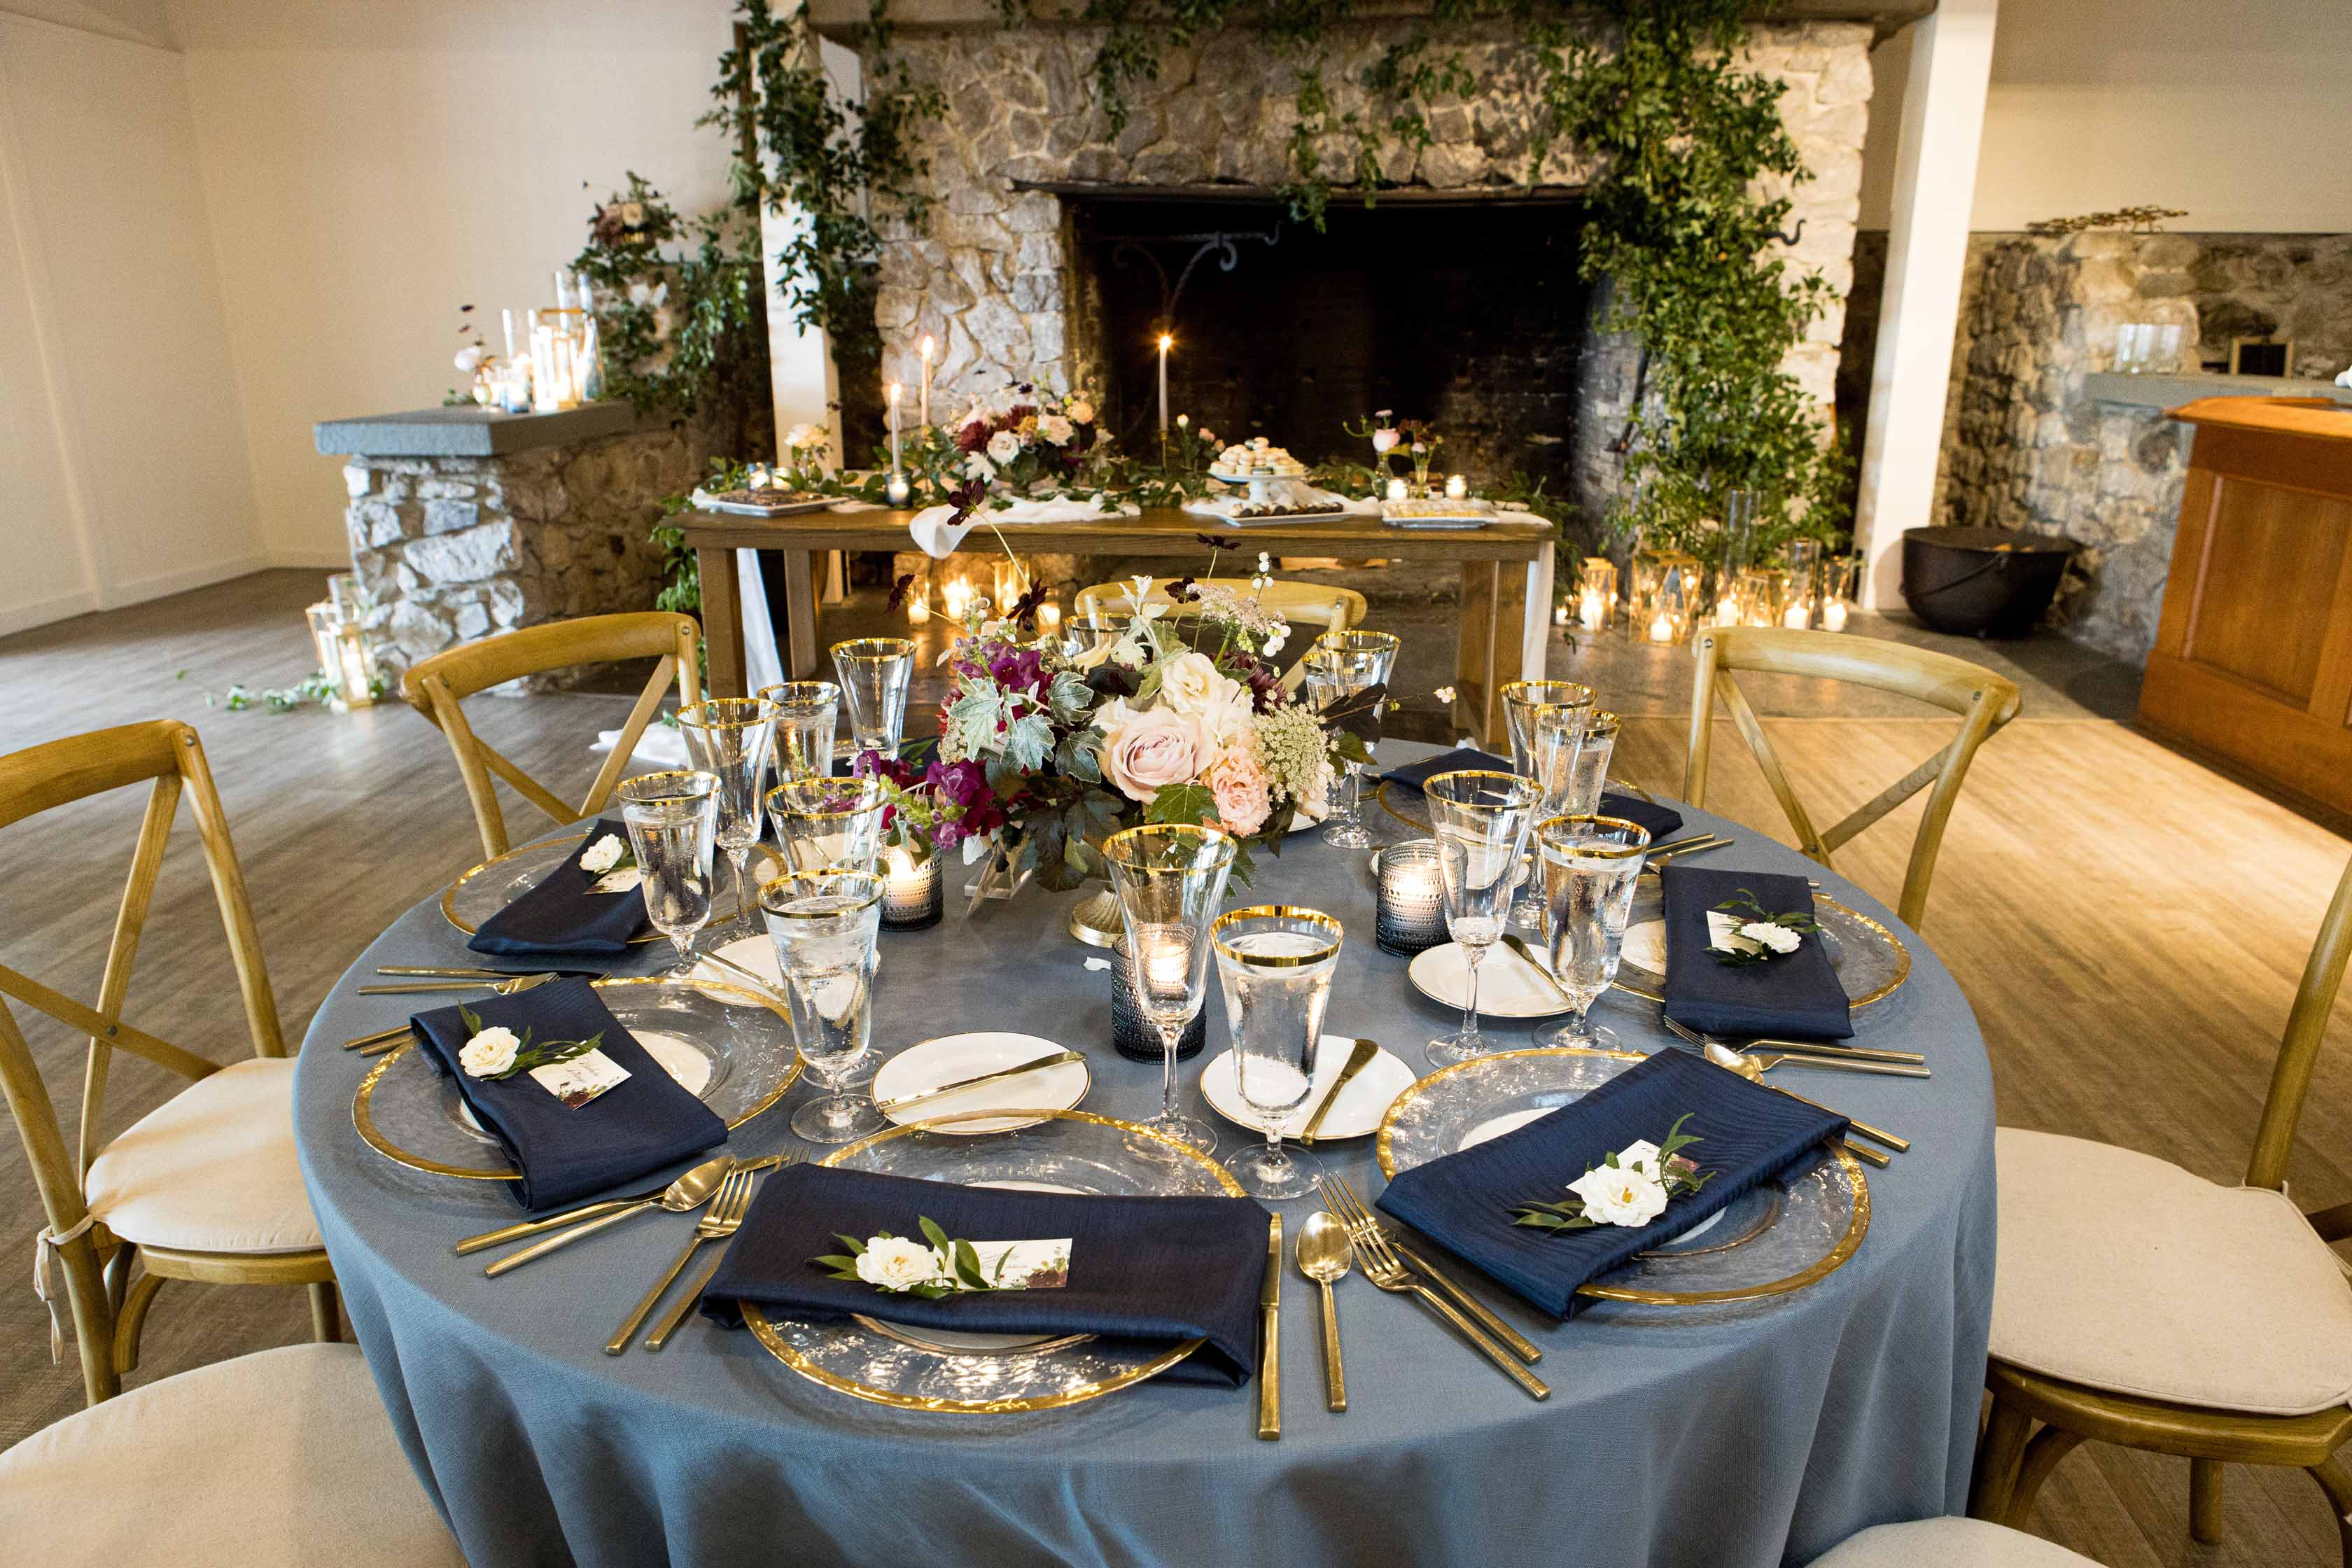 Wedding table at Roche Harbor Resort wedding with French blu linen and navy napkins